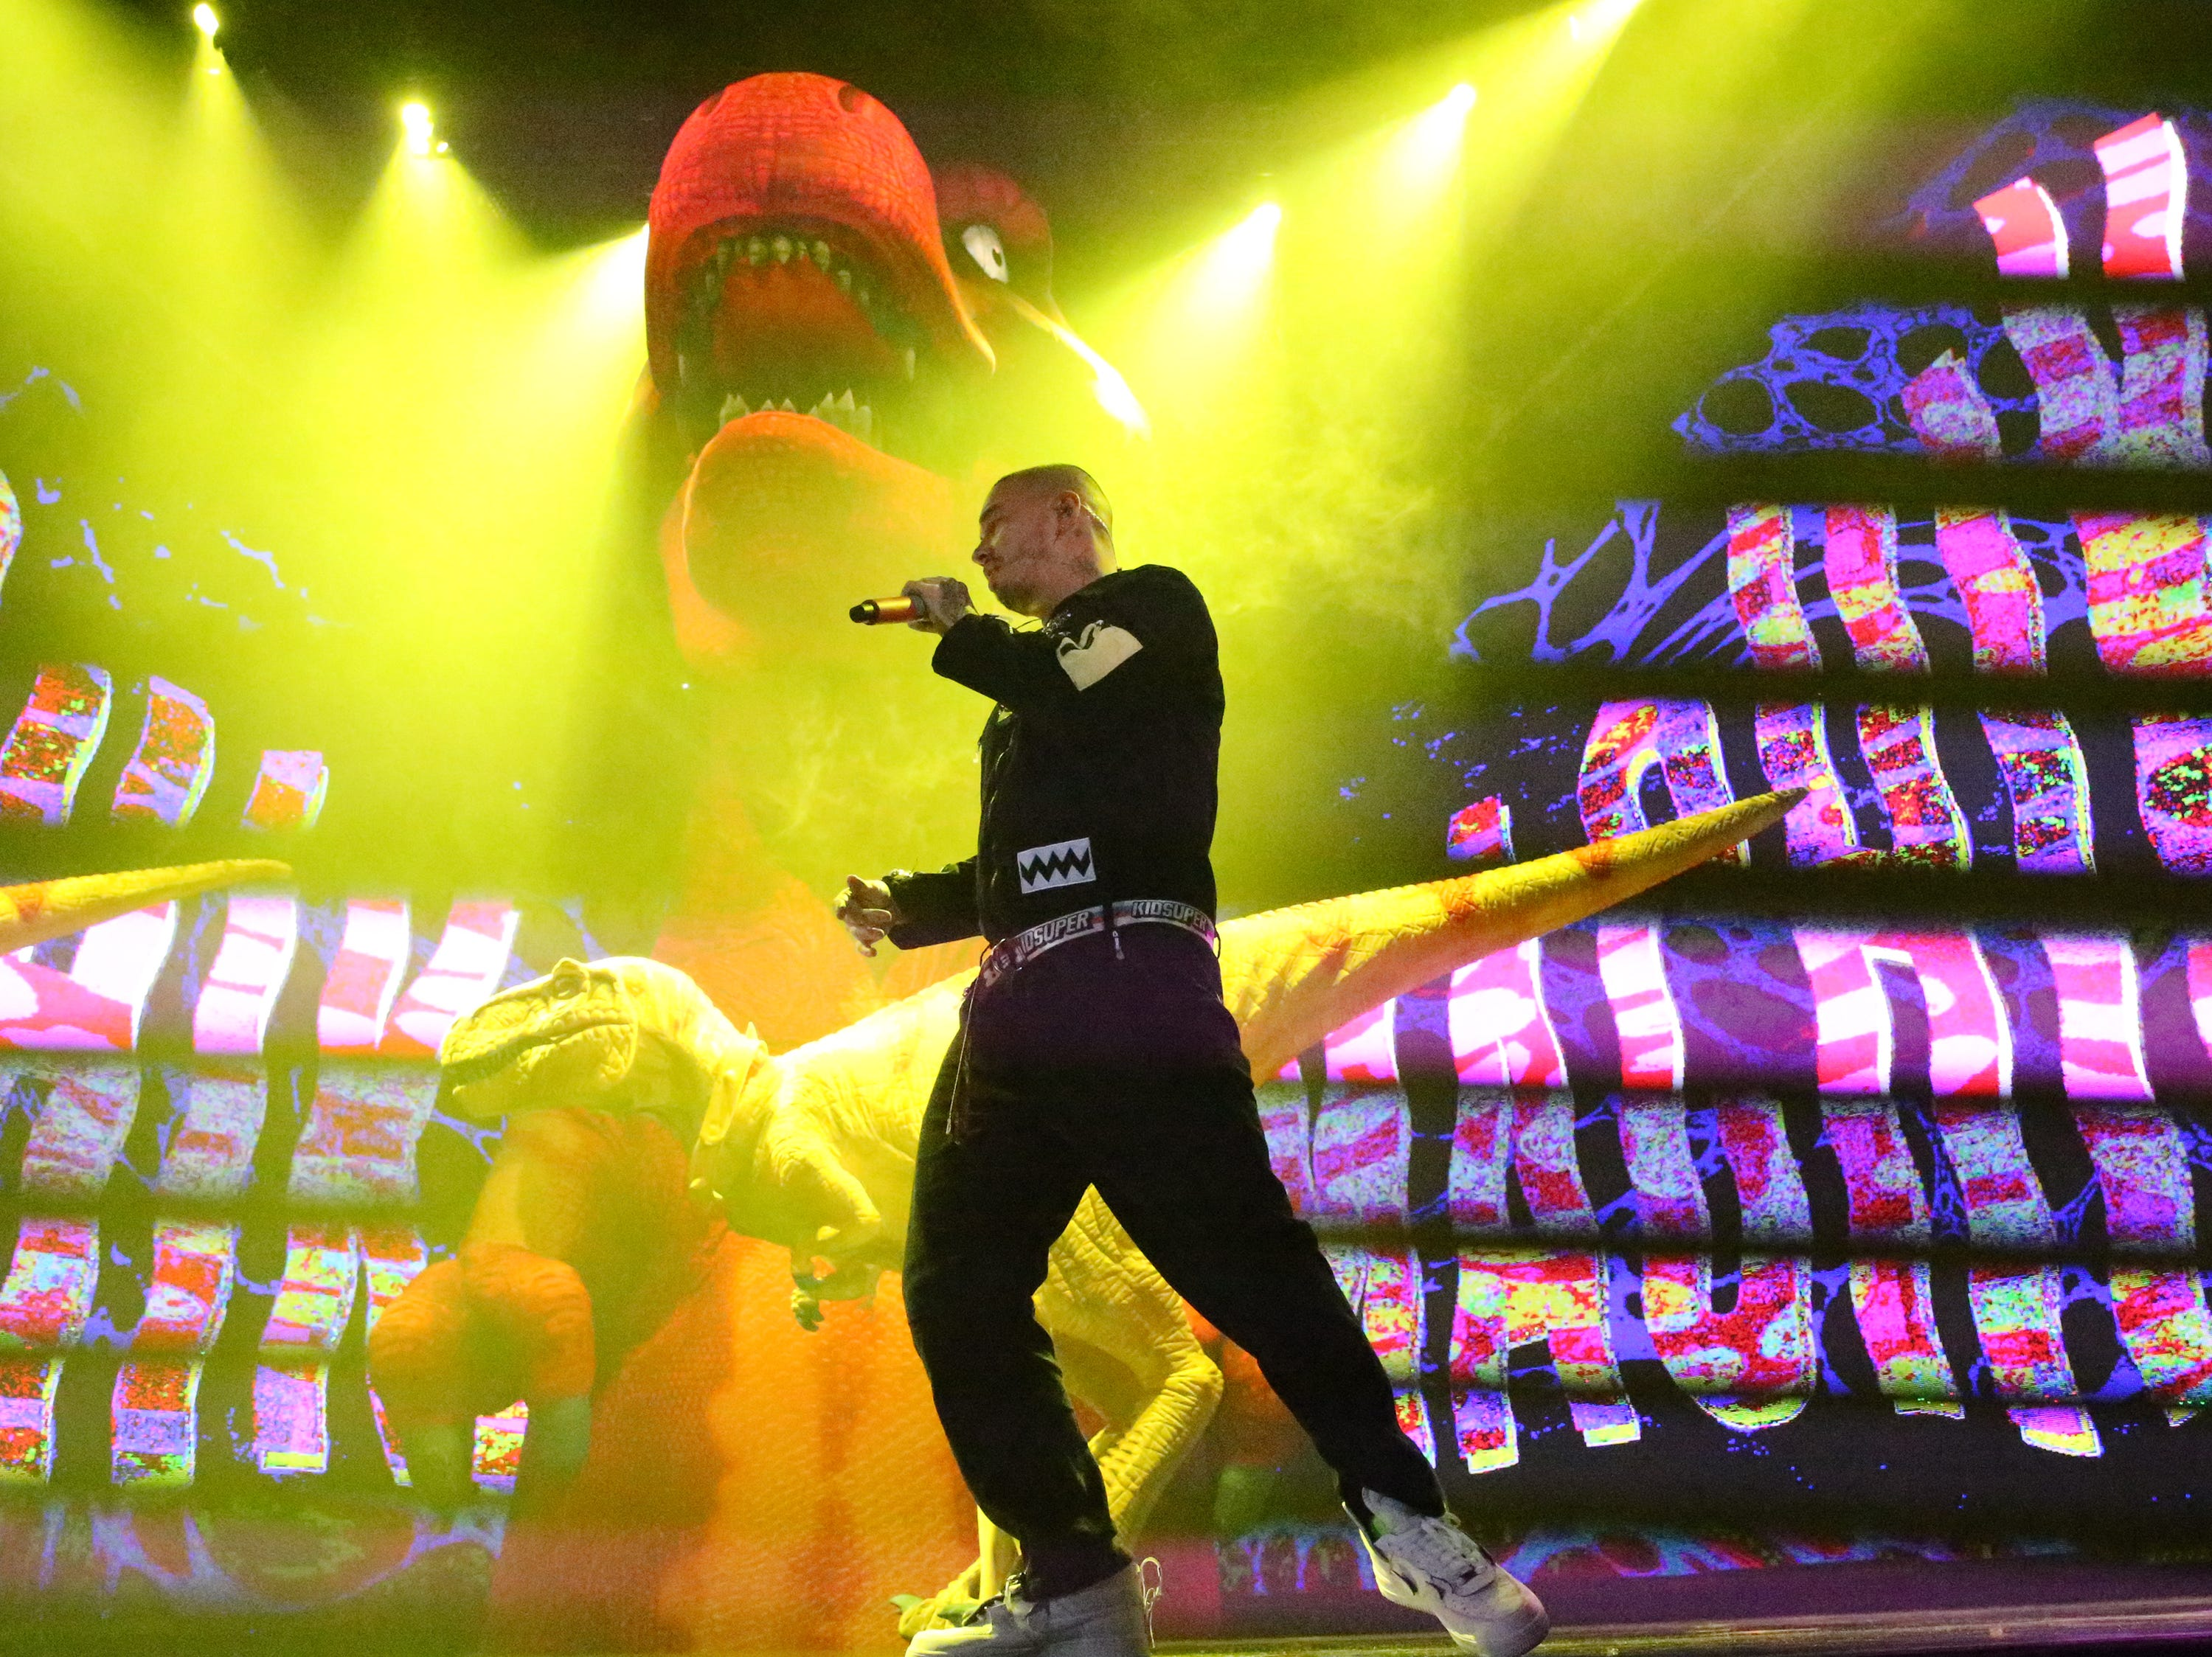 Reggaeton singer J Balvin is surrounded by dinosaurs on stage during his Sunday night show at the Don Haskins Center.